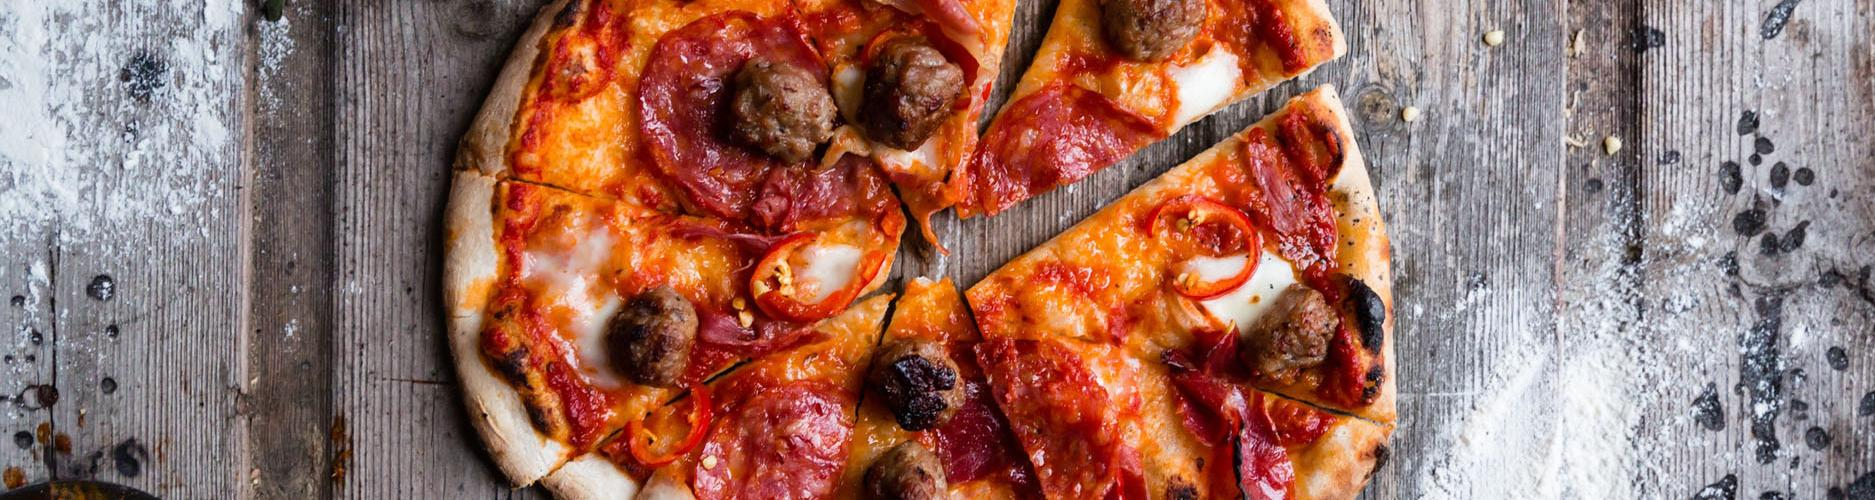 The Hot Diablo Pizza   Our 12 Favourite Ooni Recipes   Outdoor Concepts NZ